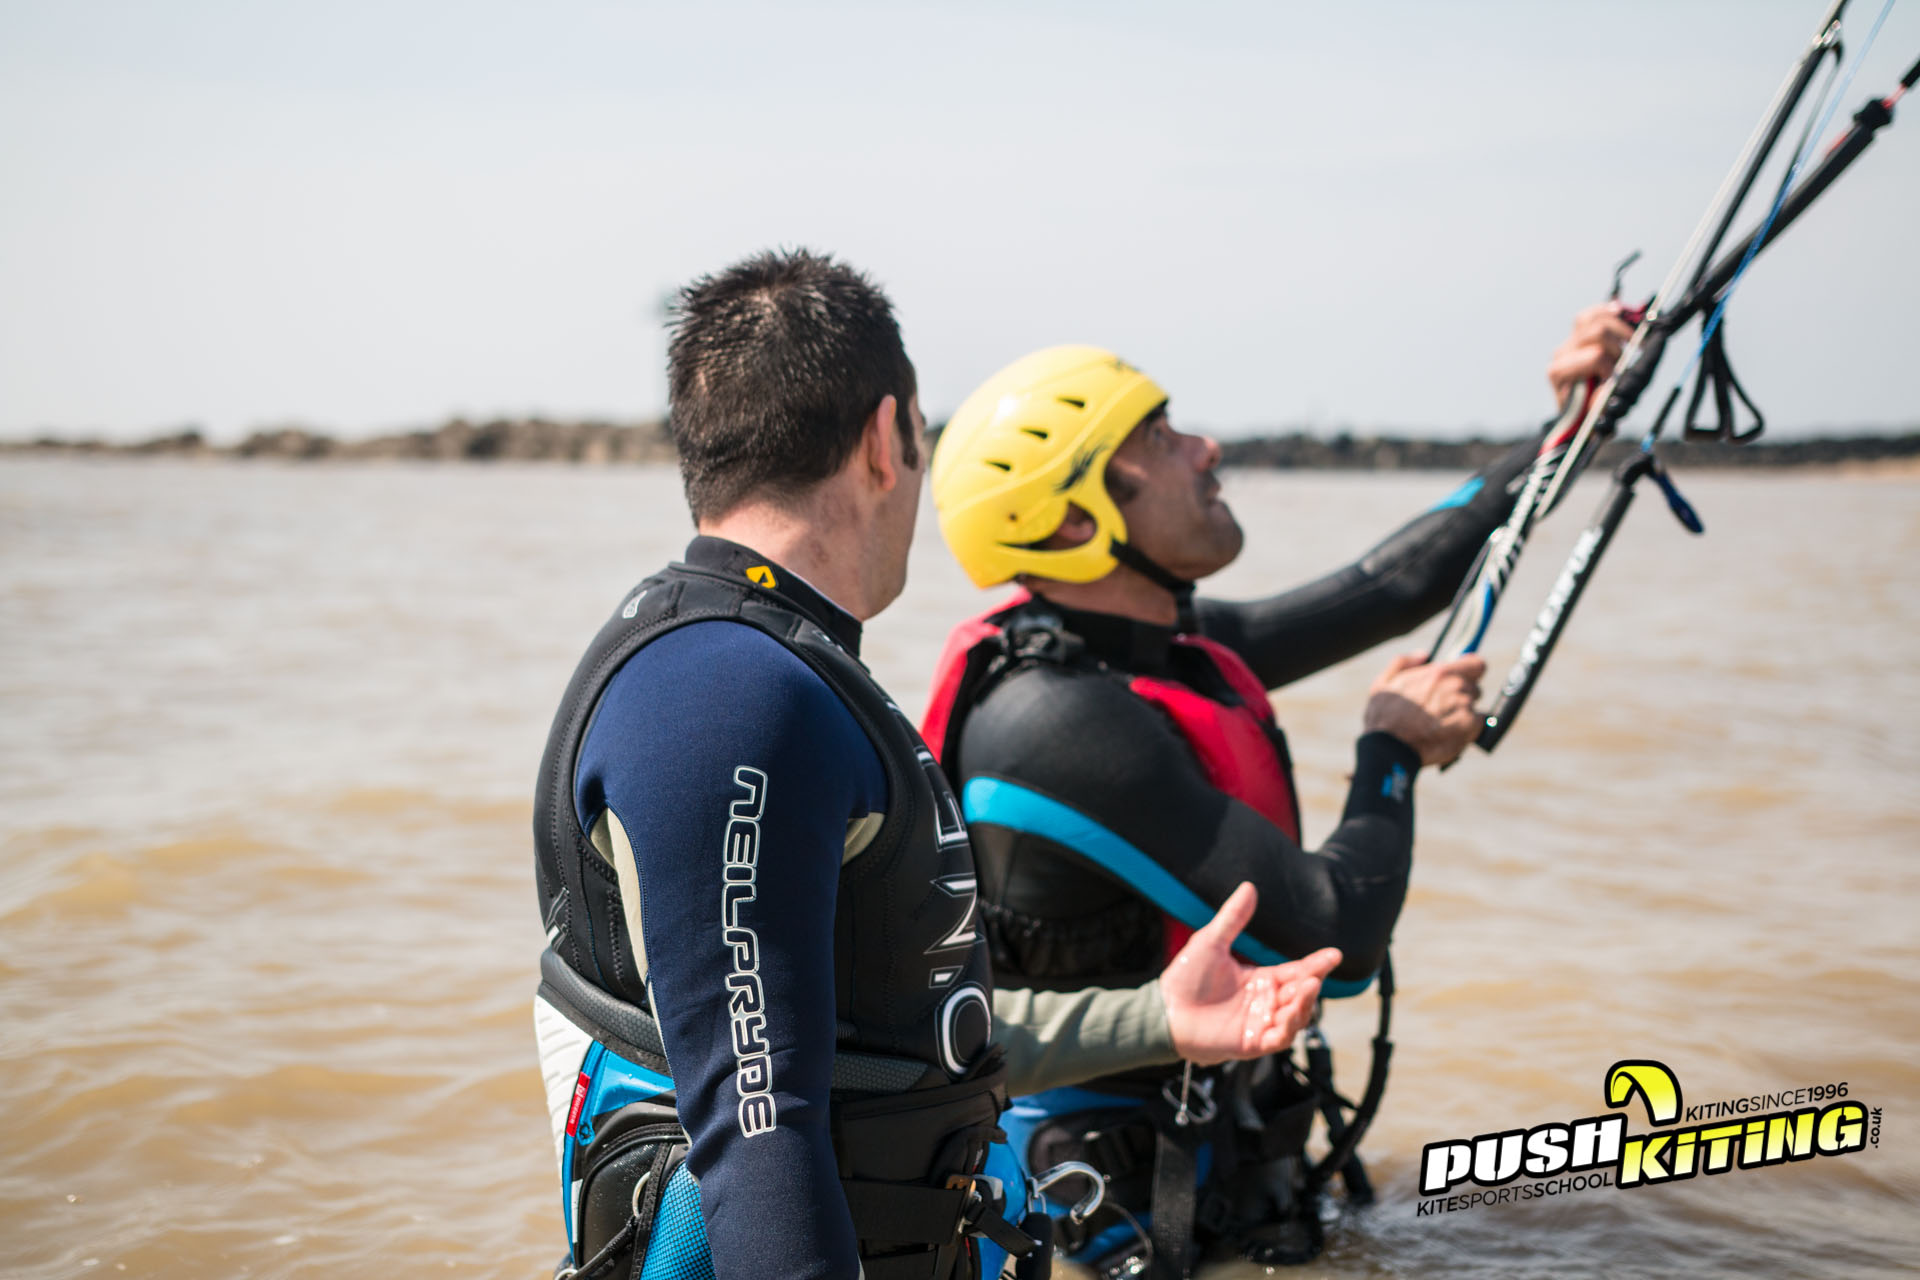 kite surfing lessons essex uk 2 20140528 1372570845